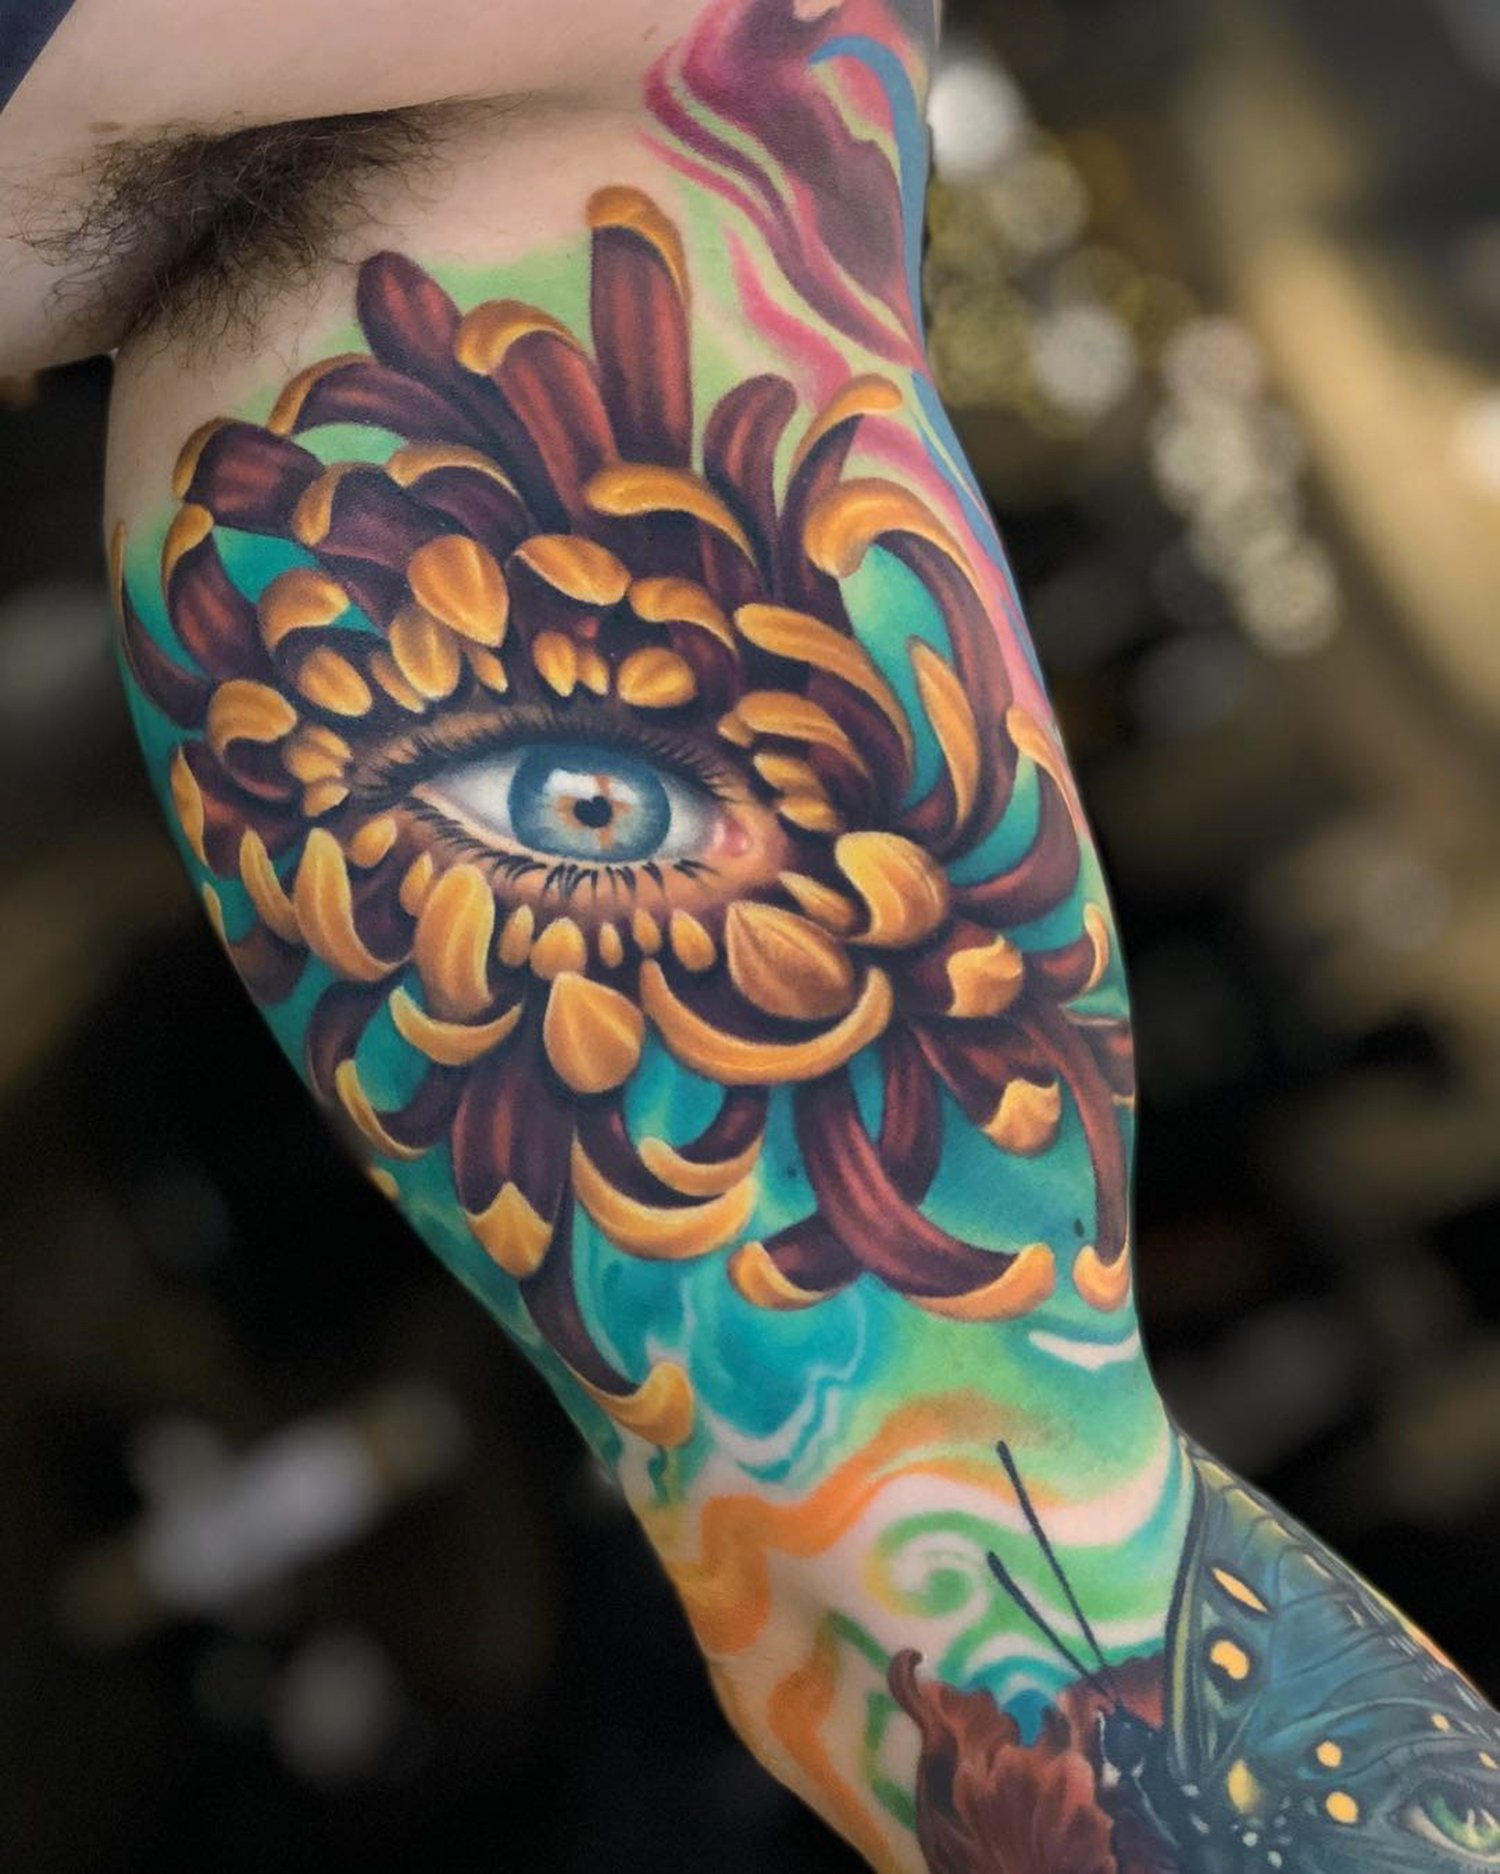 flower and eye, realistic style, surreal tattoo